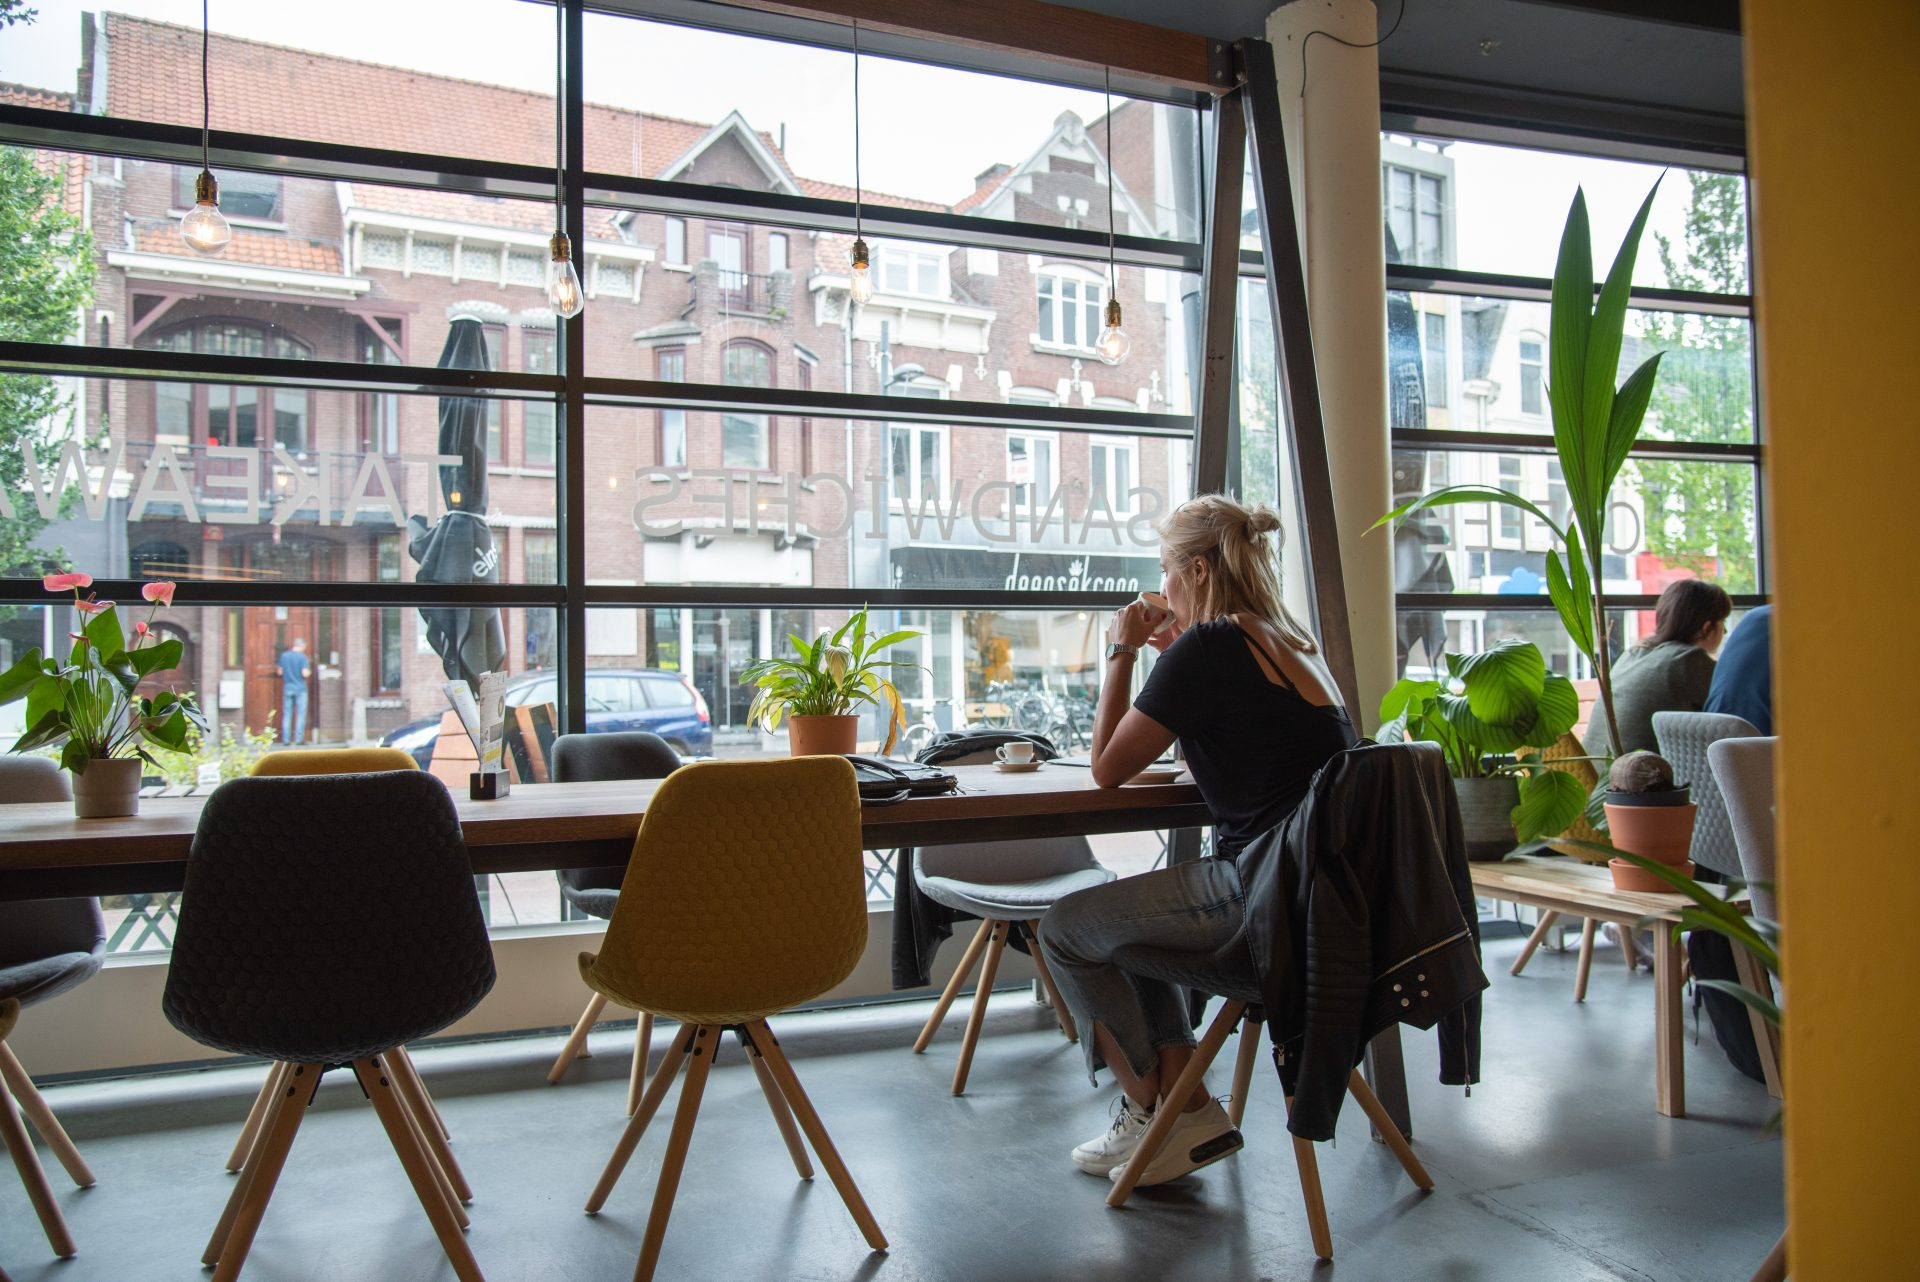 Yellow Monkey Coffee in Eindhoven